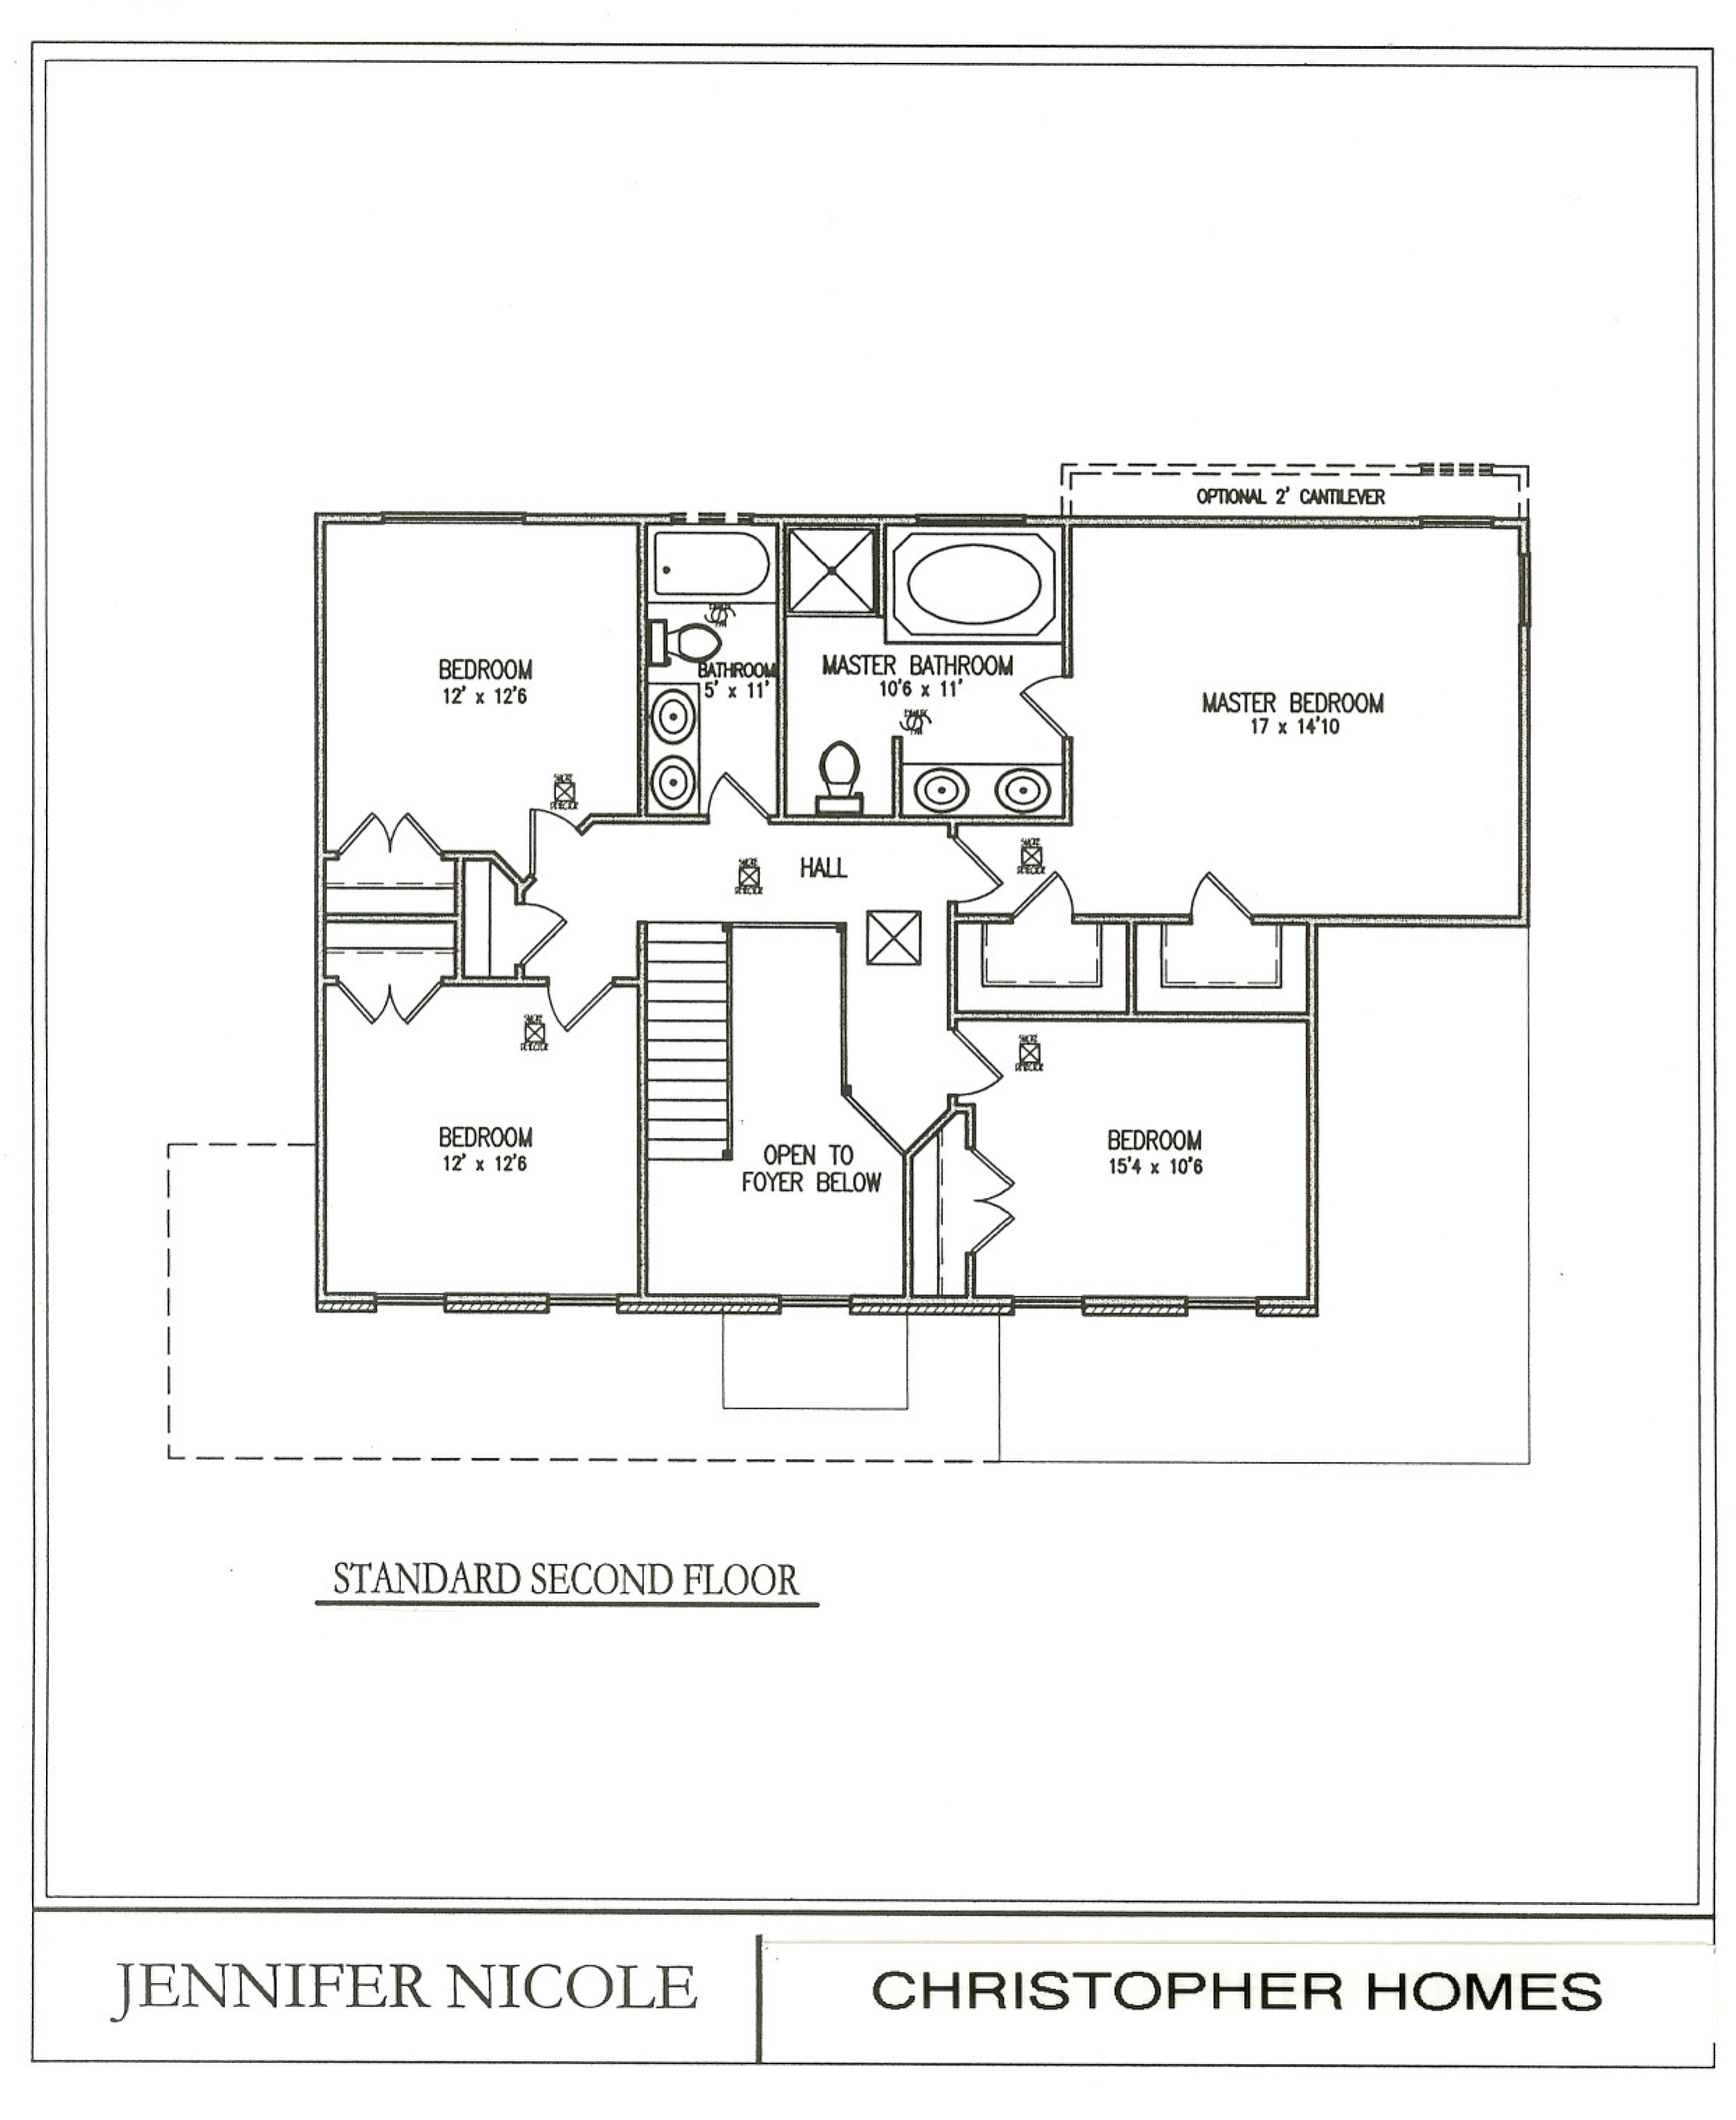 Home Additions Plan Drawings: Modular Home Additions Floor Plans